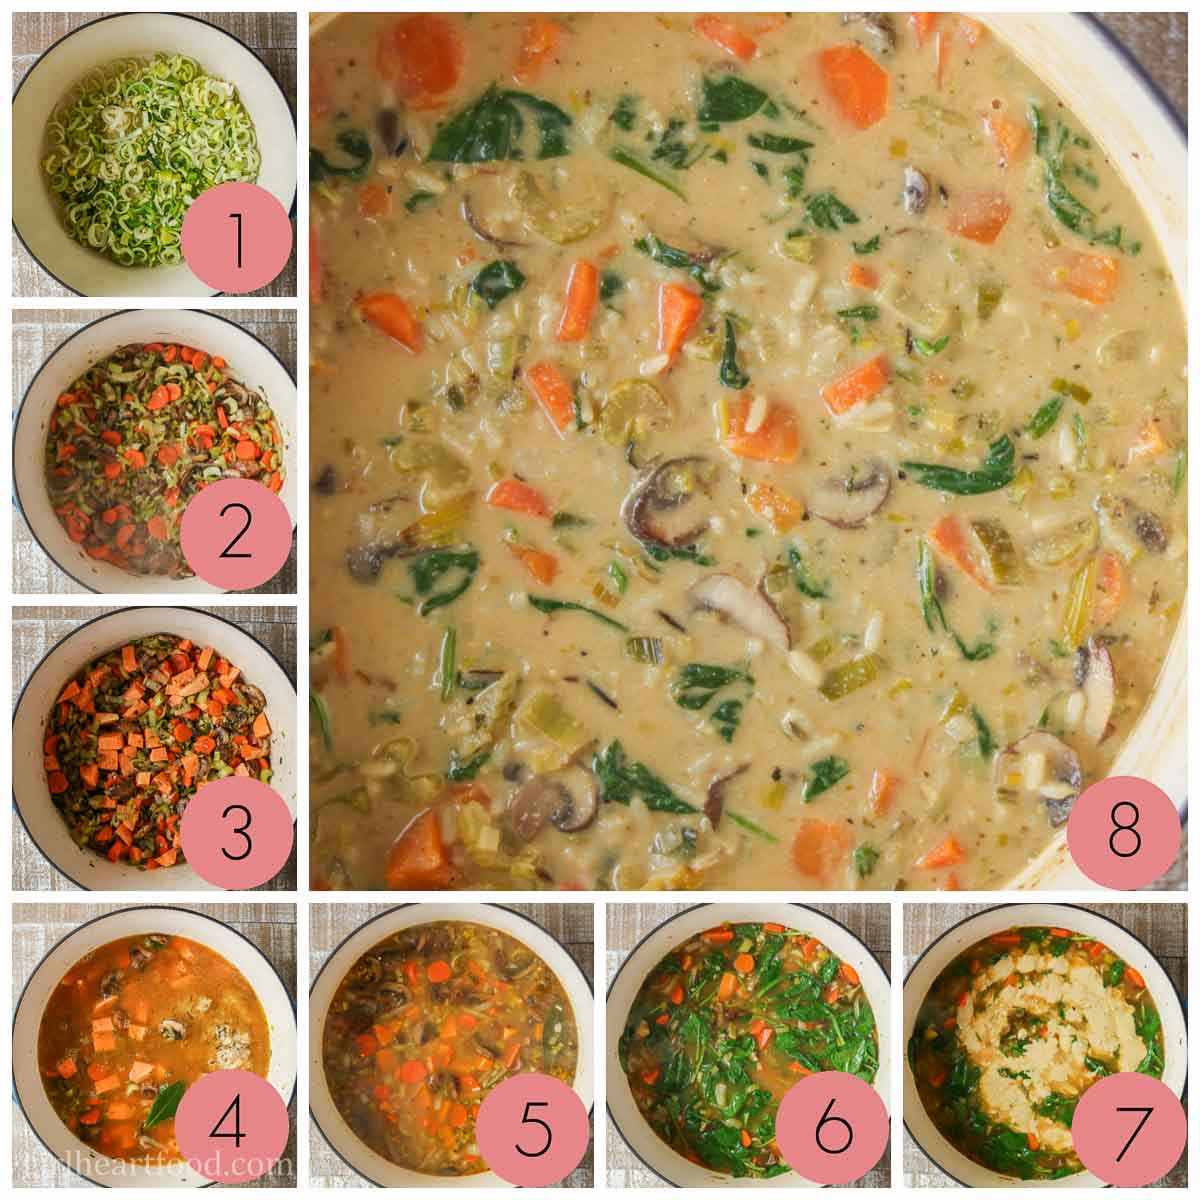 Collage of steps to make vegetable wild rice soup.